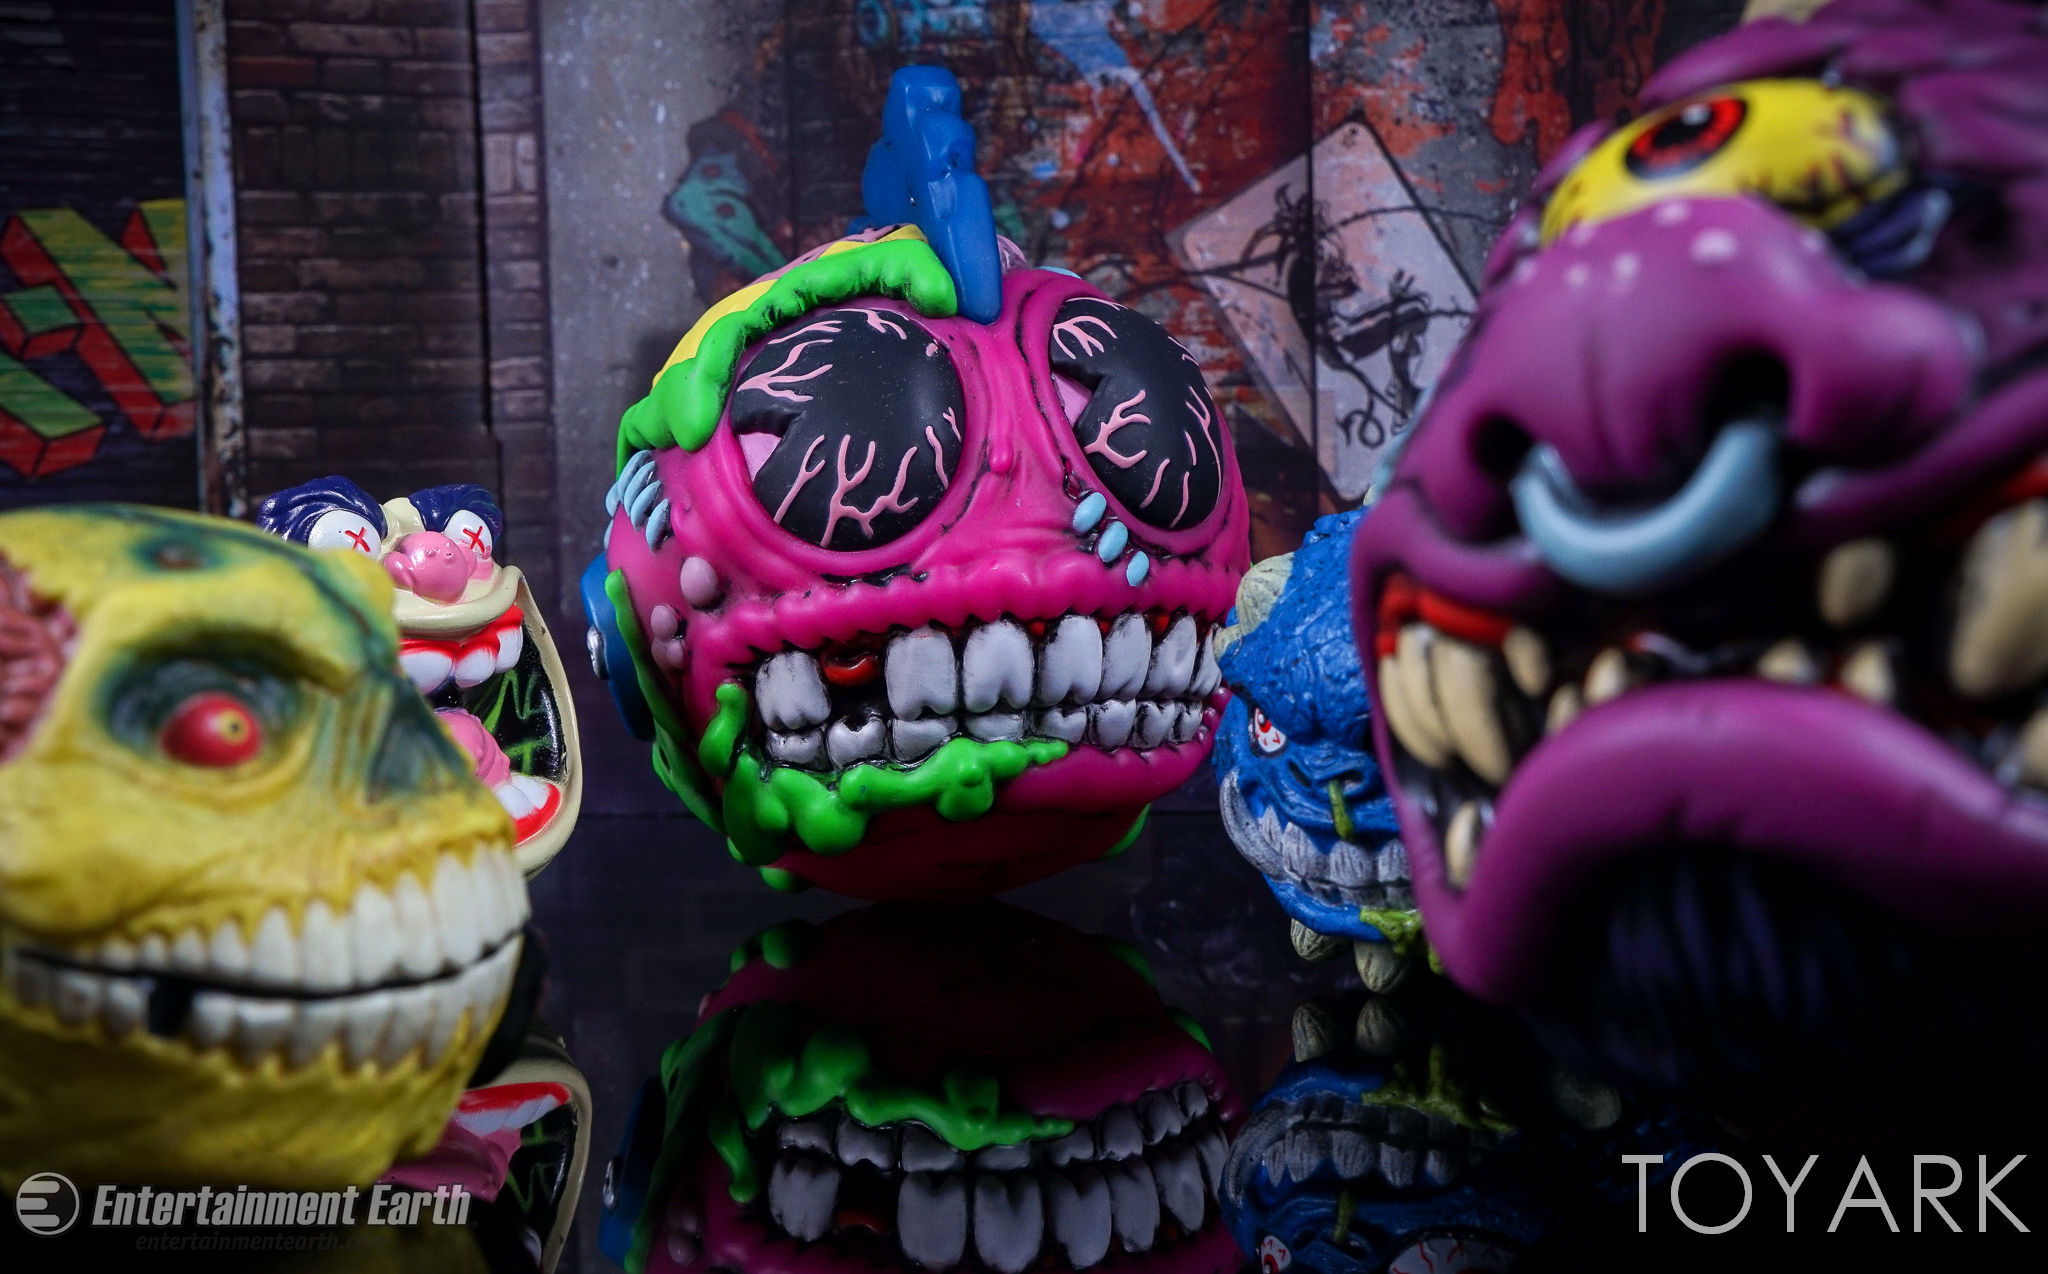 http://news.toyark.com/wp-content/uploads/sites/4/2017/02/Madballs-6-Inch-Medium-Figures-041.jpg